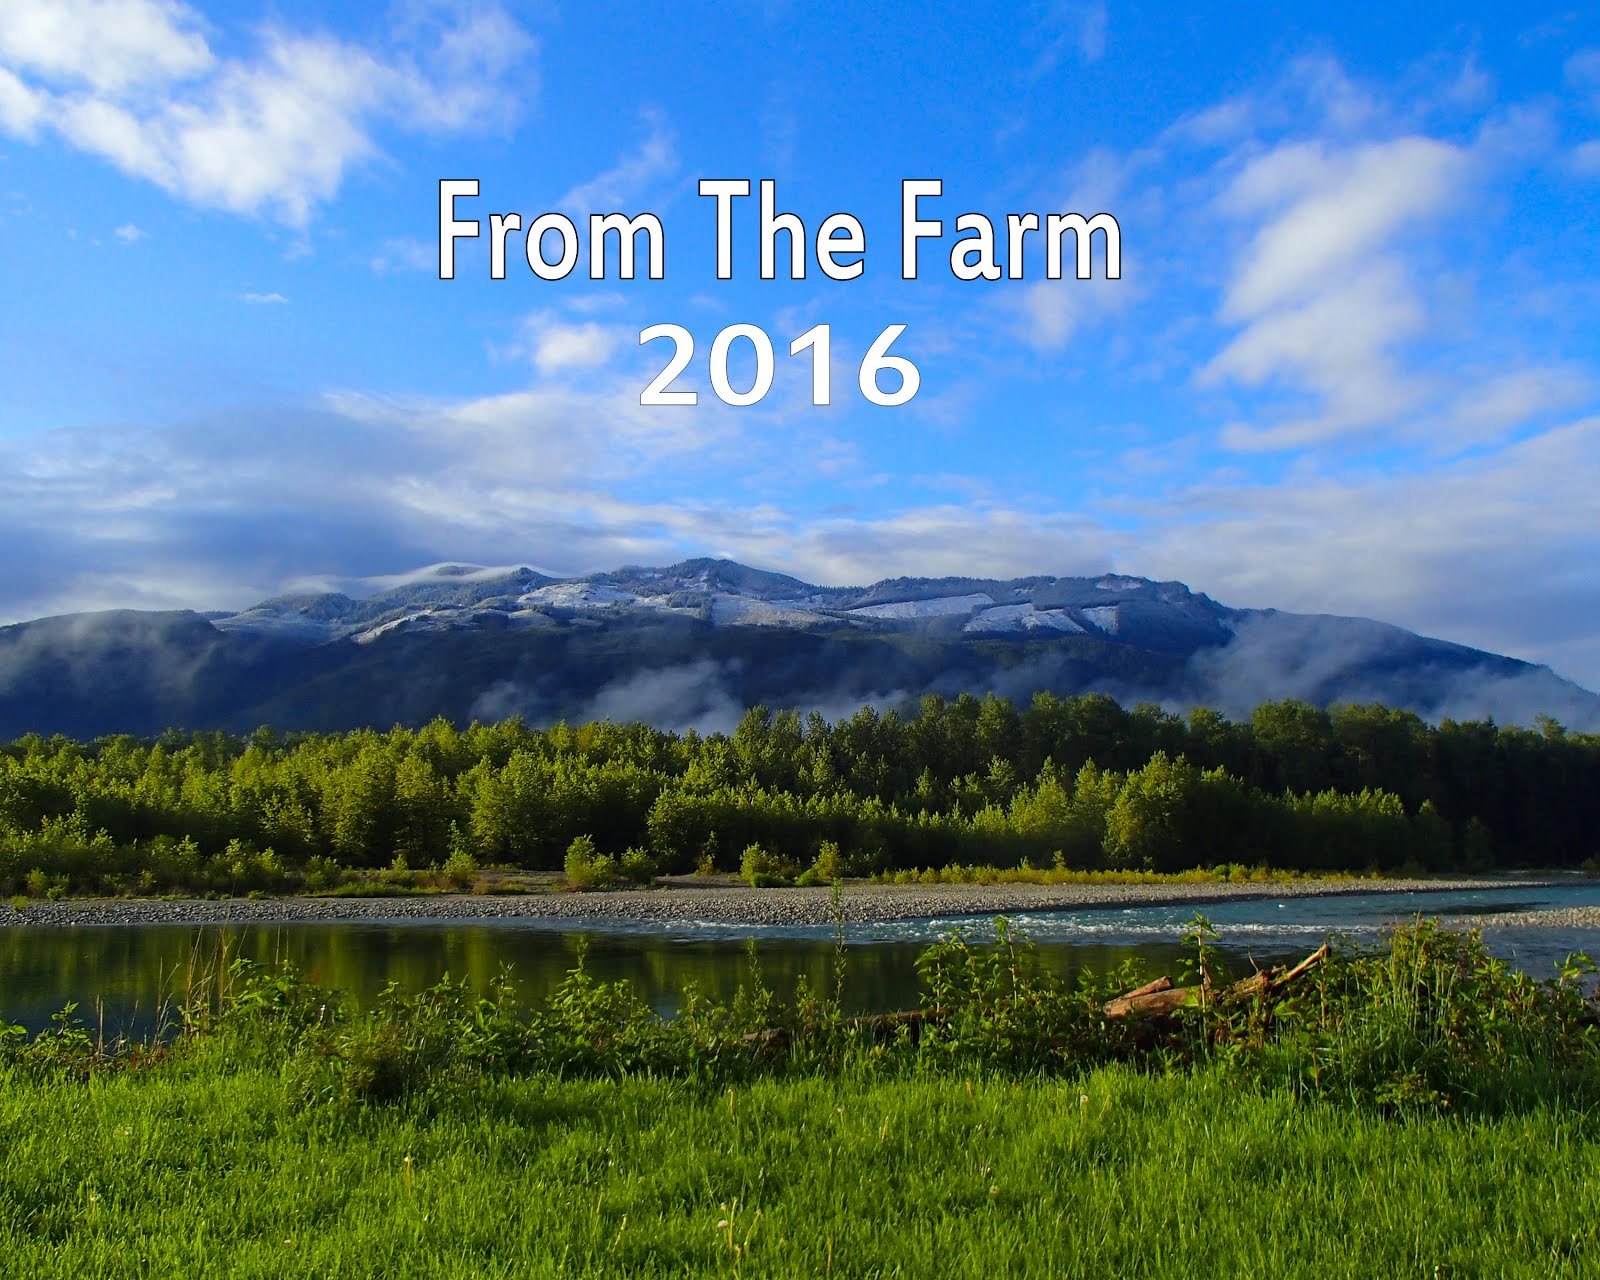 From The Farm 2016 Calendar